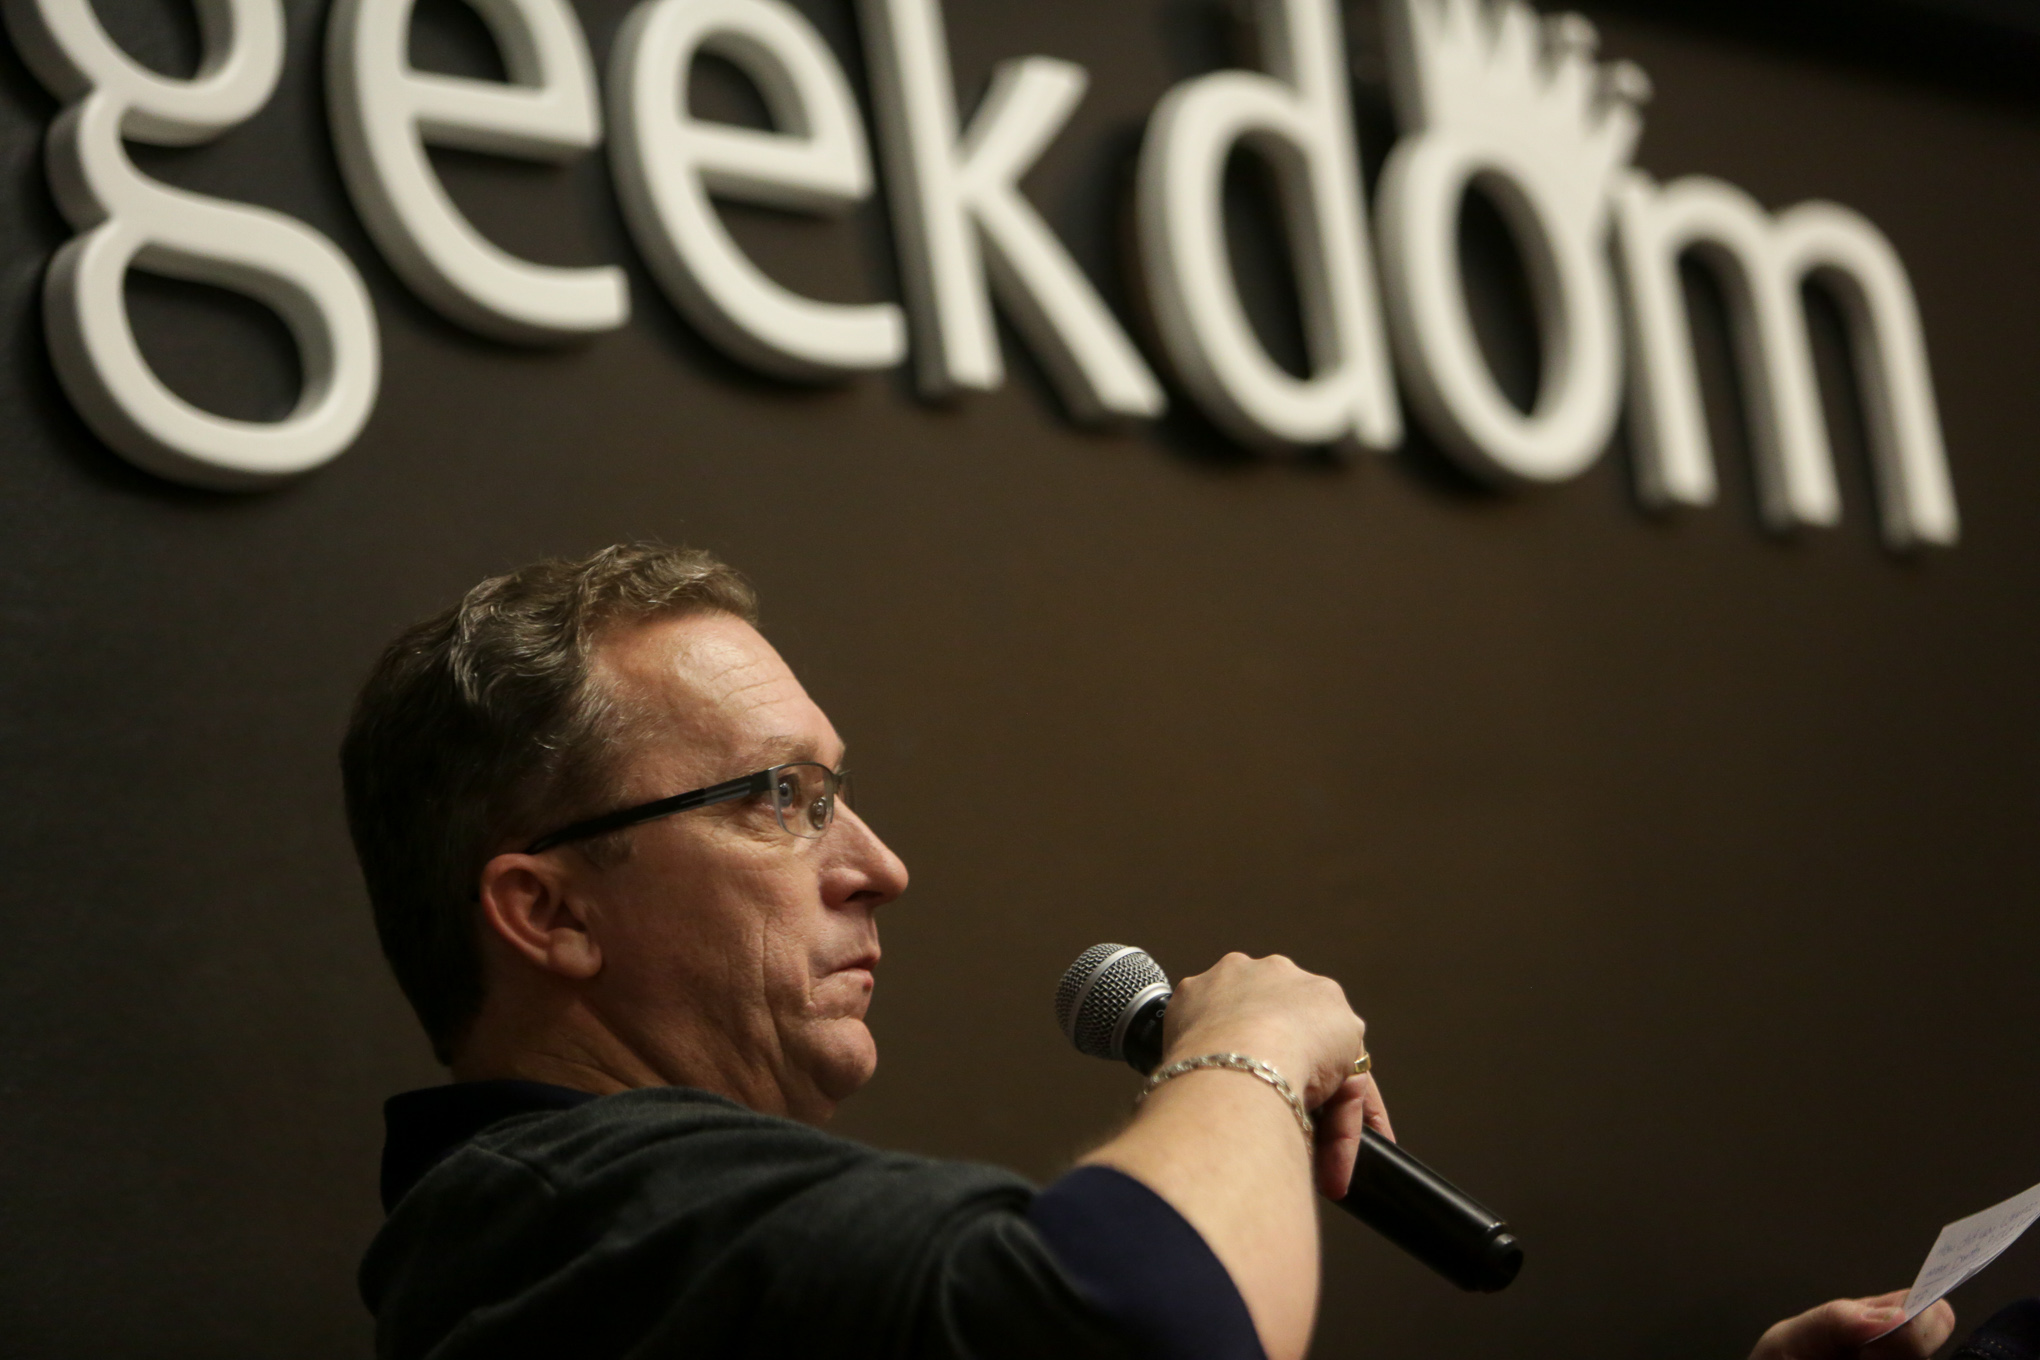 Geekdom Co-Founder Nick Longo answers questions from the audience.